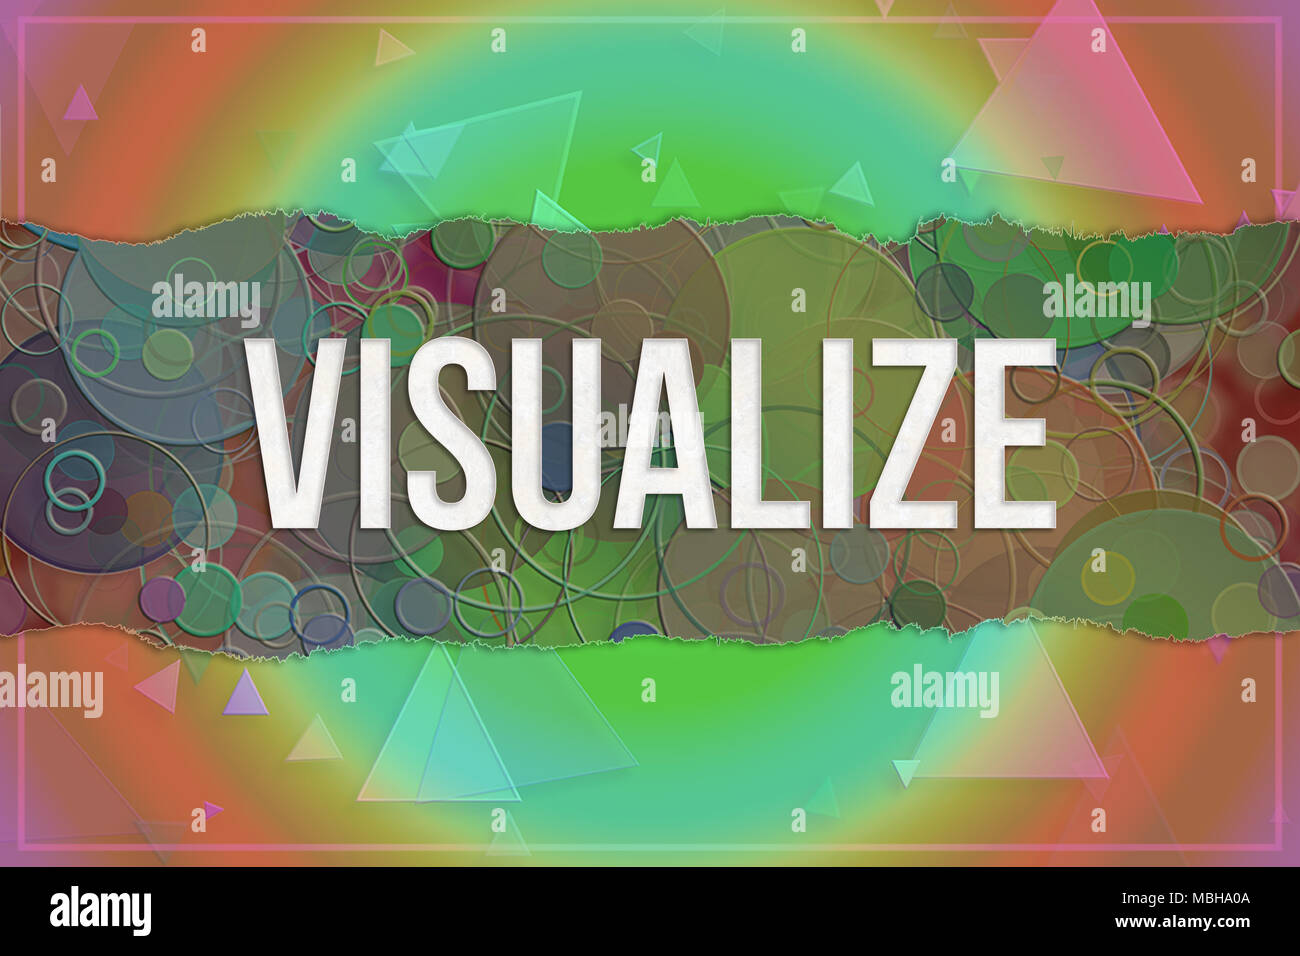 Visualize, information technology conceptual words with colorful shapes pattern as background for web page, graphic design, catalog or wallpaper. - Stock Image